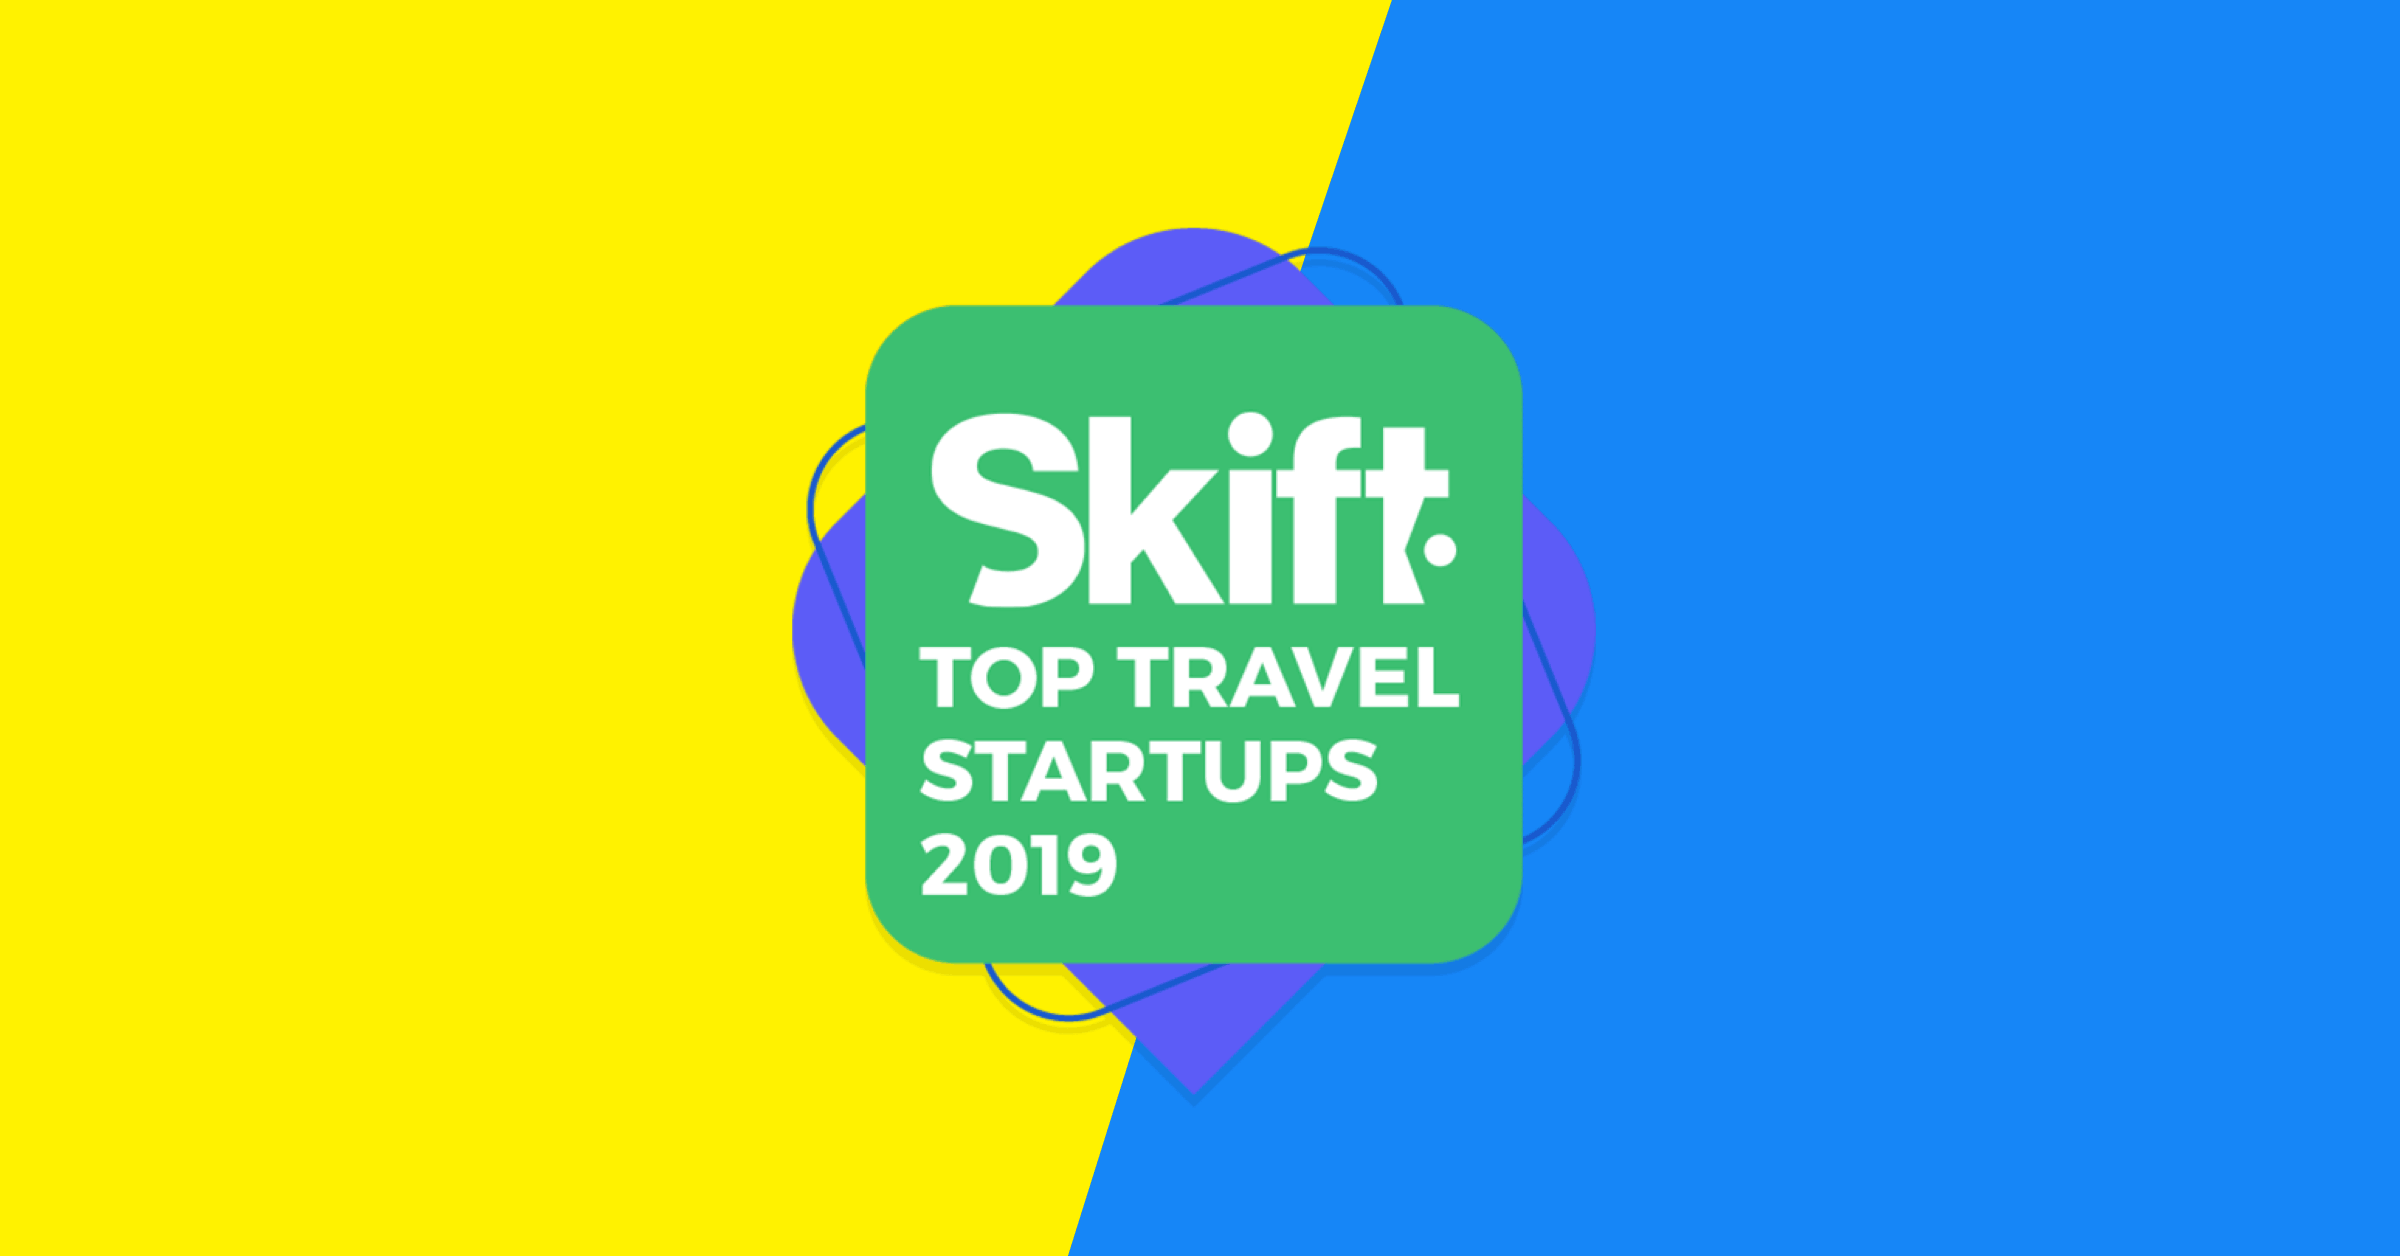 Travelstop named one of the top startups in 2019 by Skift